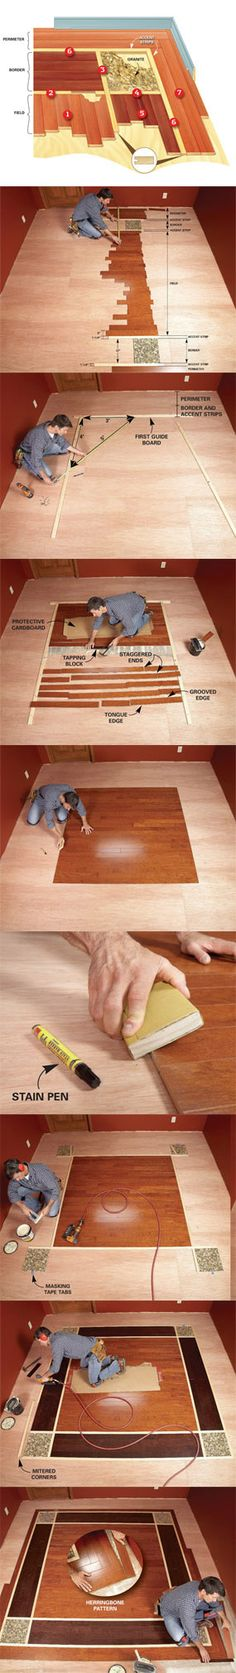 Mix and match colors of wood laminate flooring, add a few stone tiles as accents, and suddenly you've made an extraordinary wood floor for the same cost as an ordinary one. Learn how to create an exciting design with prefinished wood laminate flooring at http://www.familyhandyman.com/DIY-Projects/Flooring/Laminate-Flooring/diy-hardwood-floors-lay-a-contrasting-border/View-All